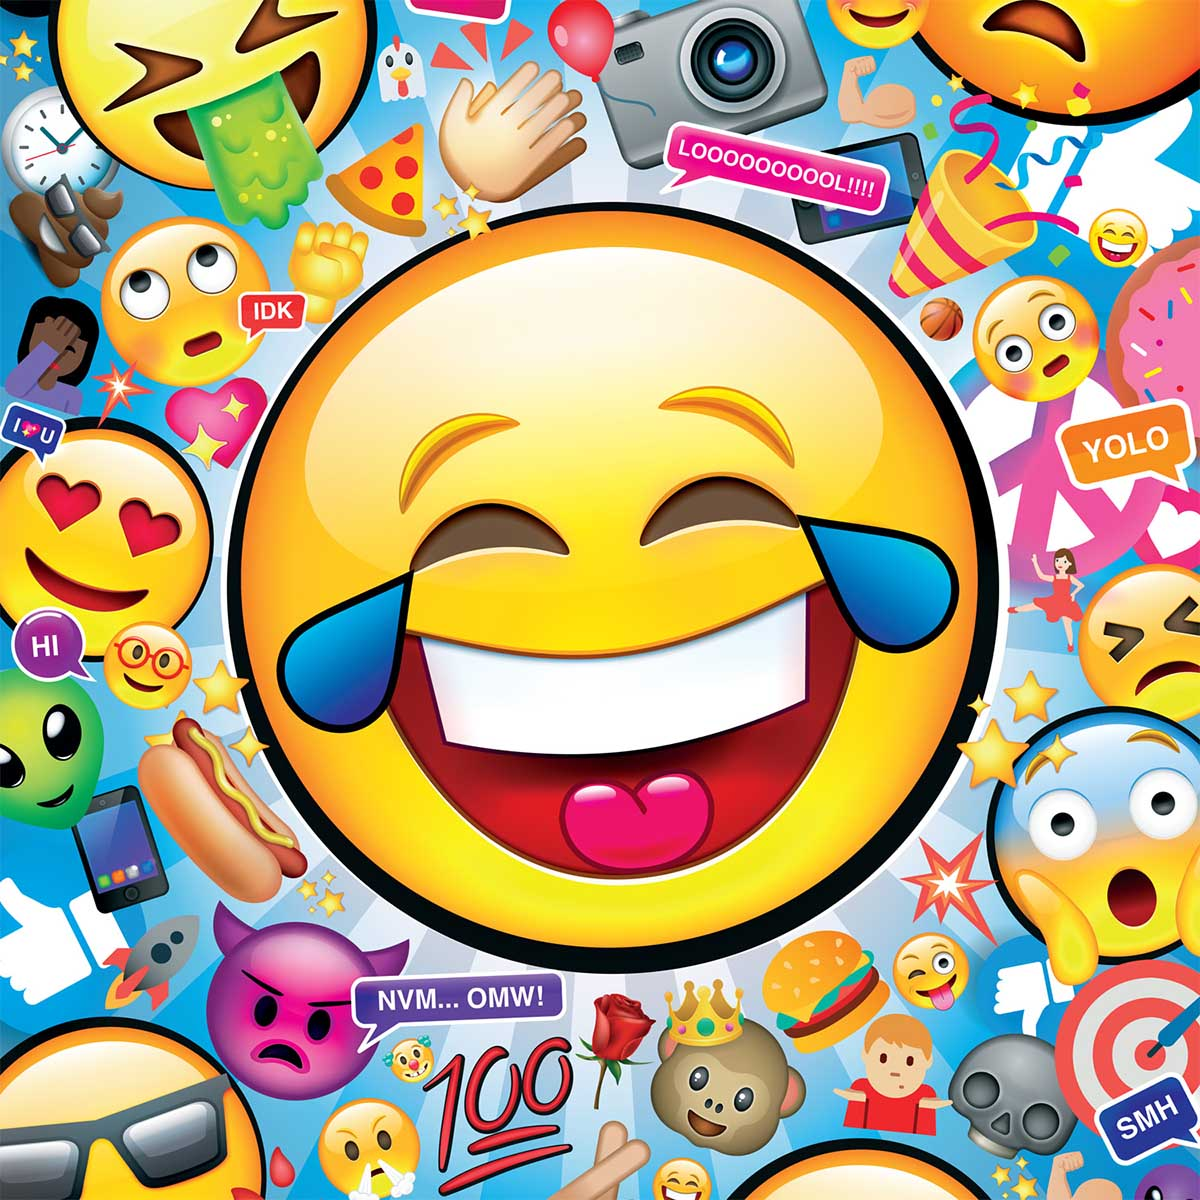 Emojis Graphics / Illustration Jigsaw Puzzle